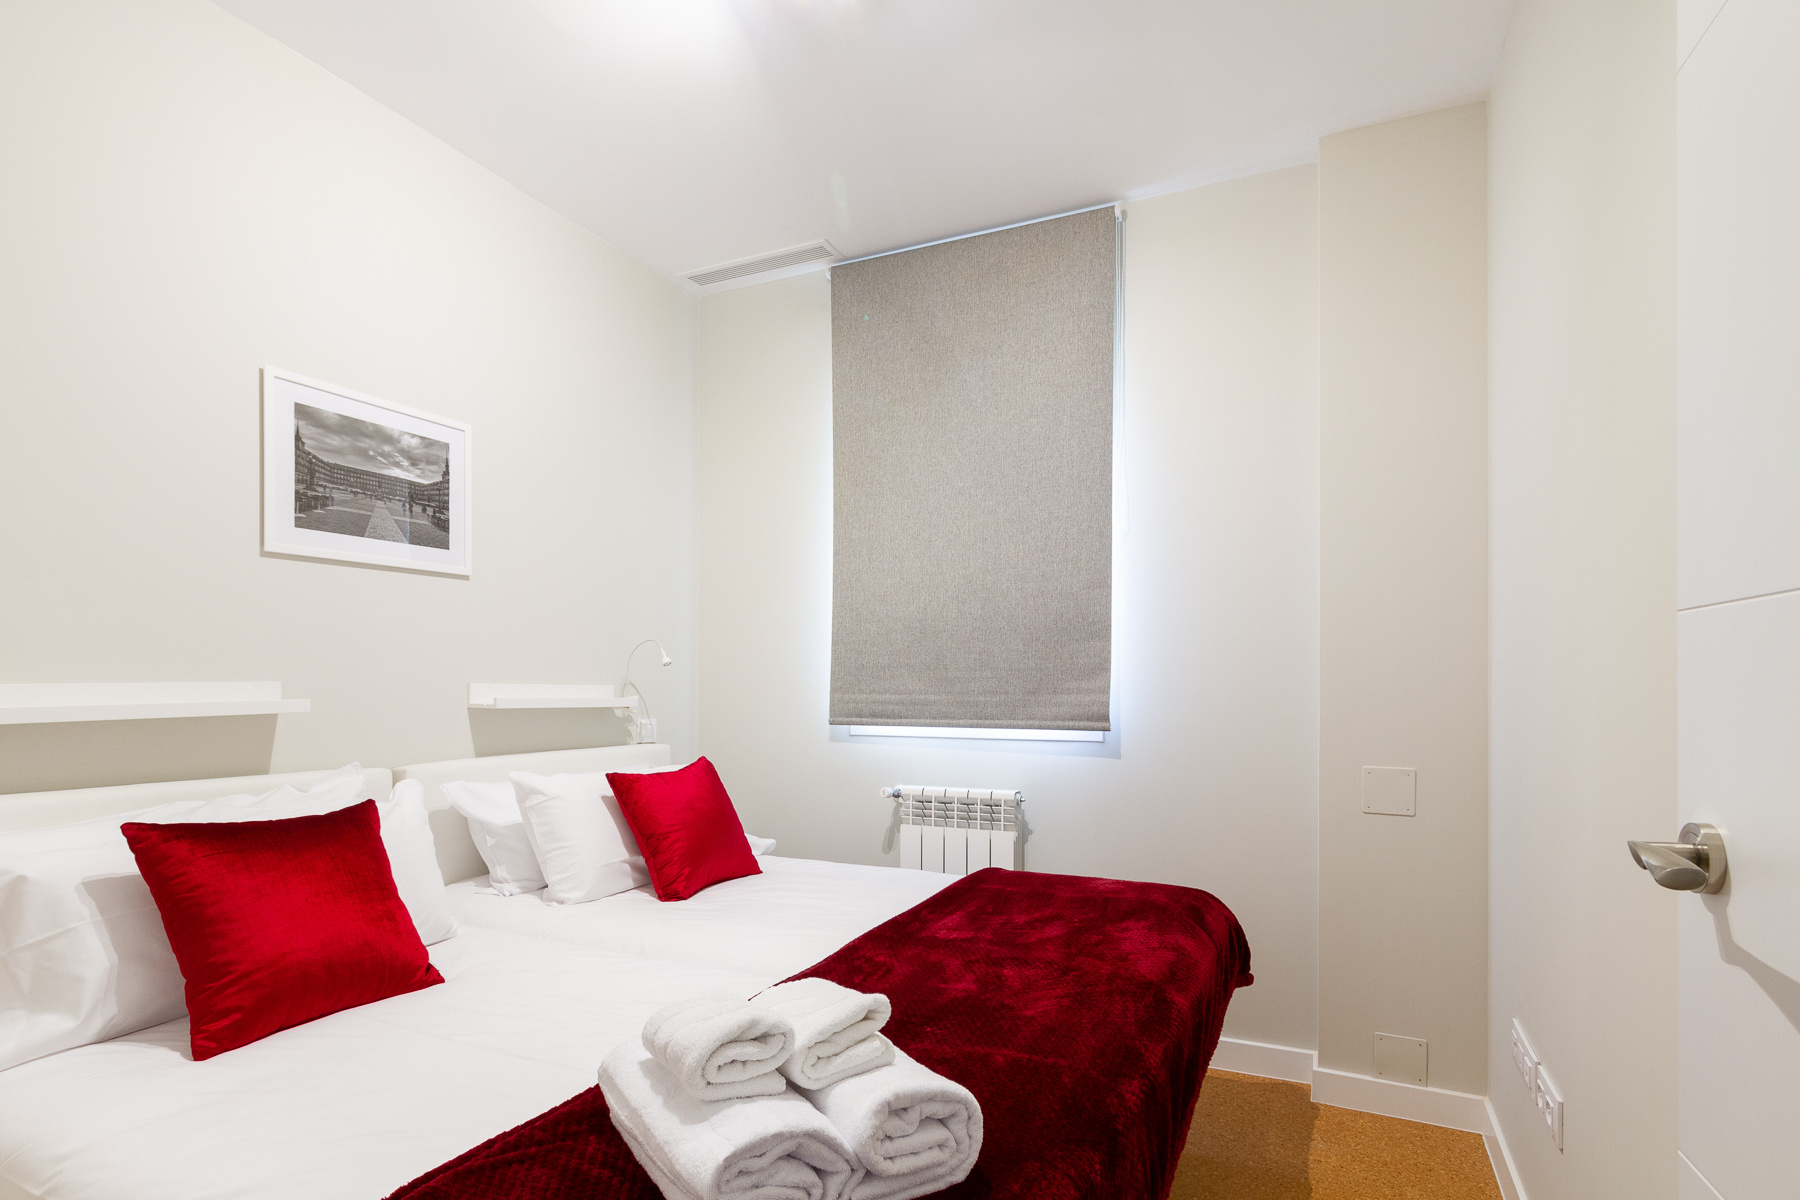 Beds at the Calle Ibiza Apartments